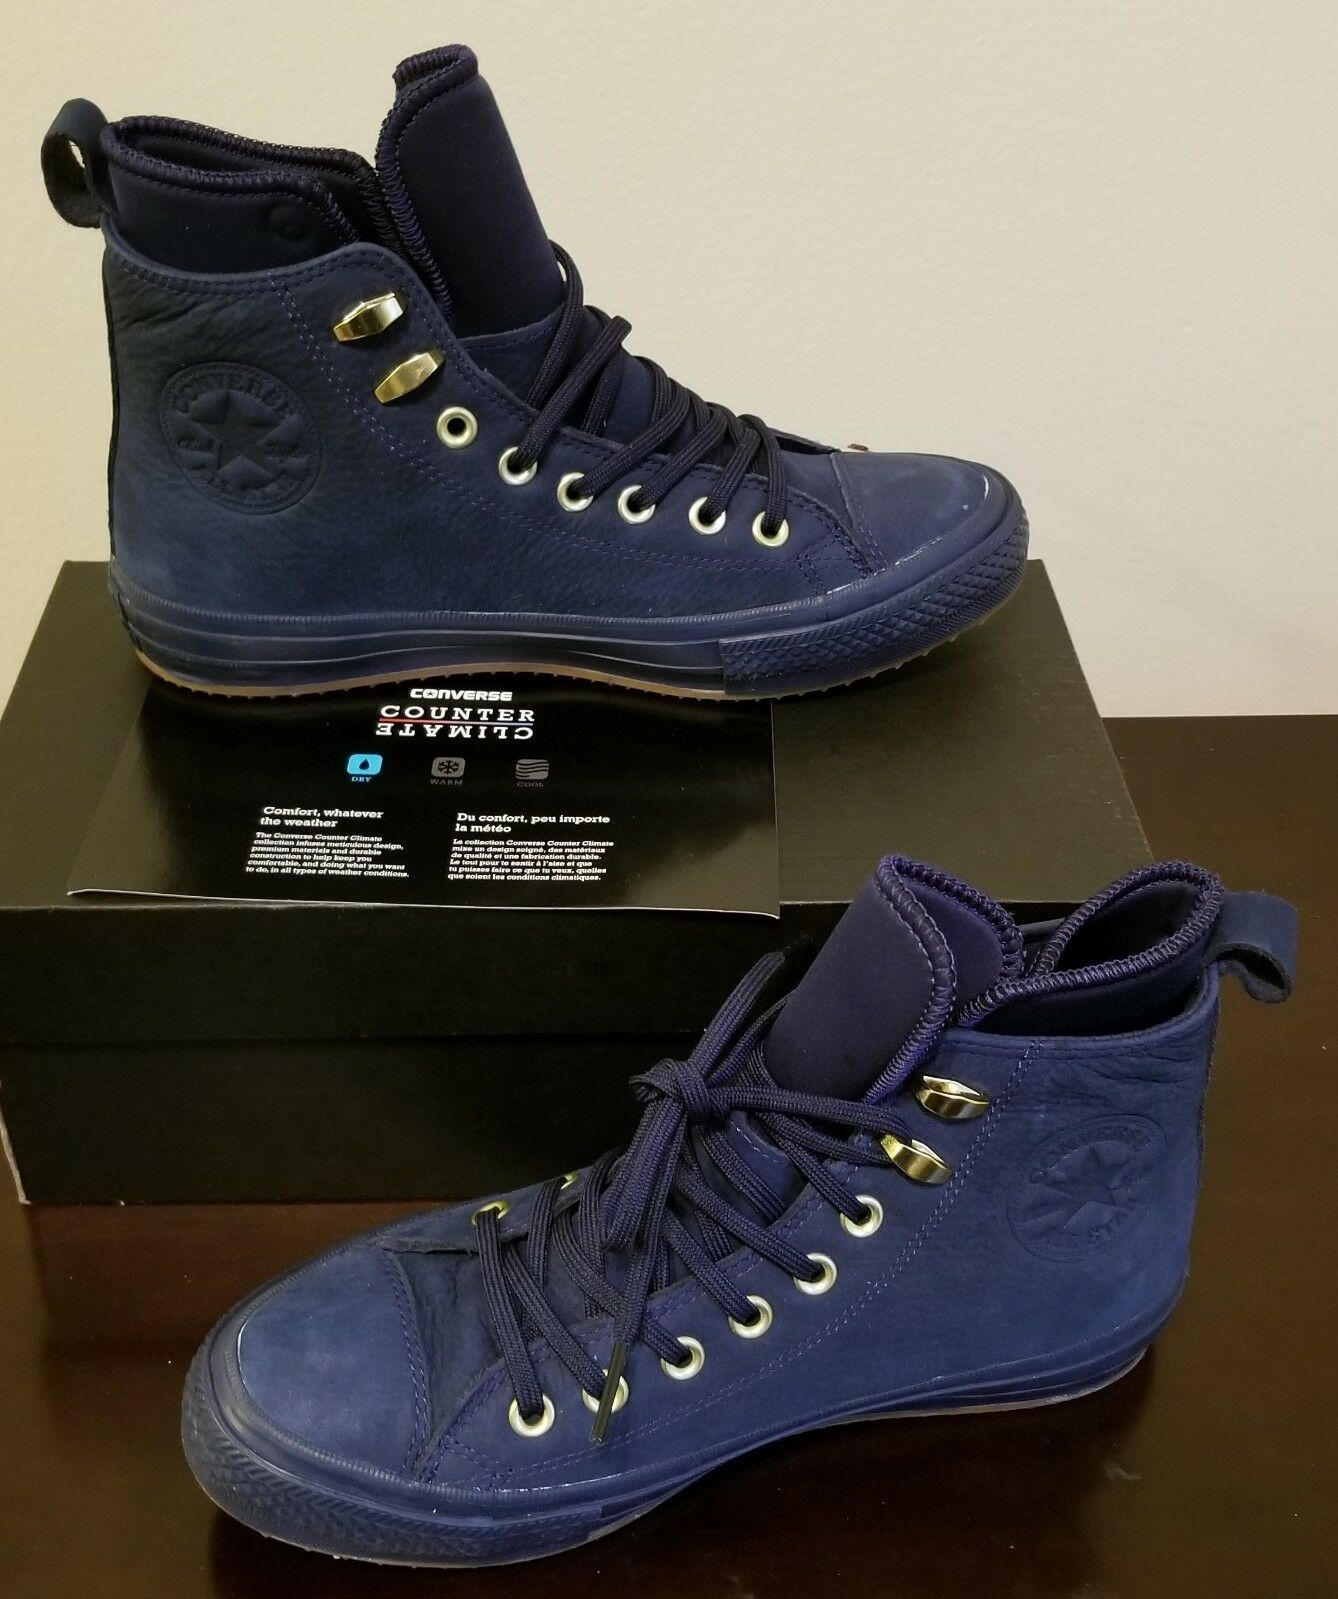 NEW CONVERSE CHUCK TAYLOR ALL STAR II WATERPROOF MESH BACKED LEATHER BOOT US 9